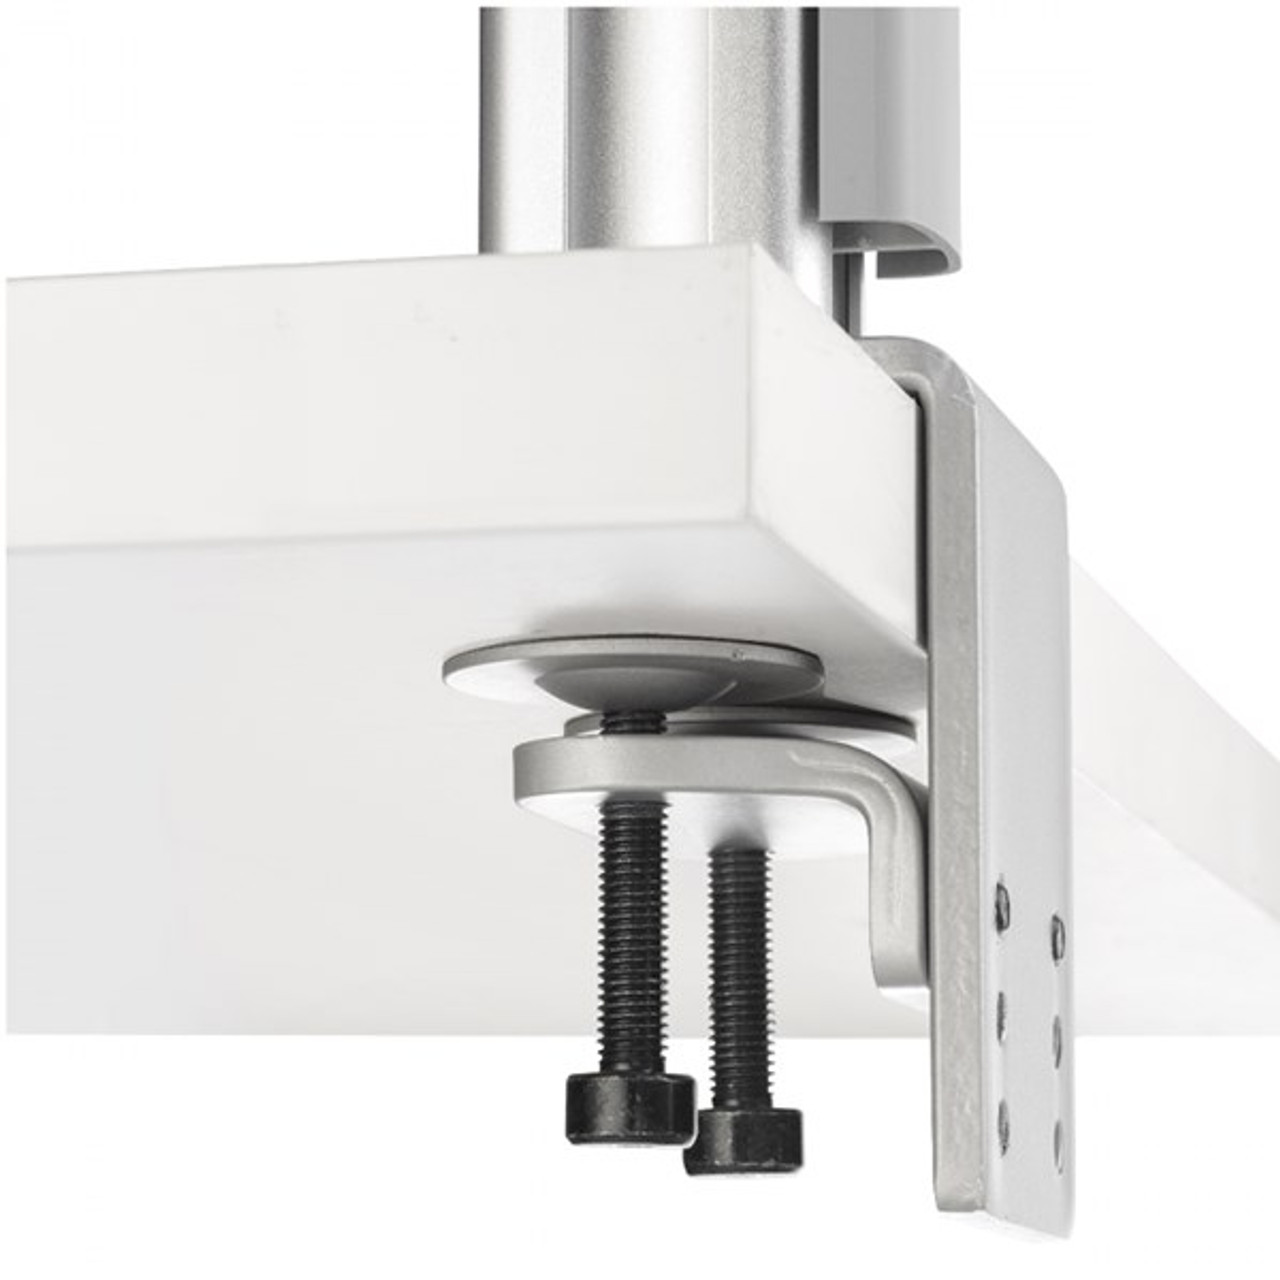 Image for Atdec AWM-FH Heavy Duty F-Clamp Desk Mount - Silver CX Computer Superstore